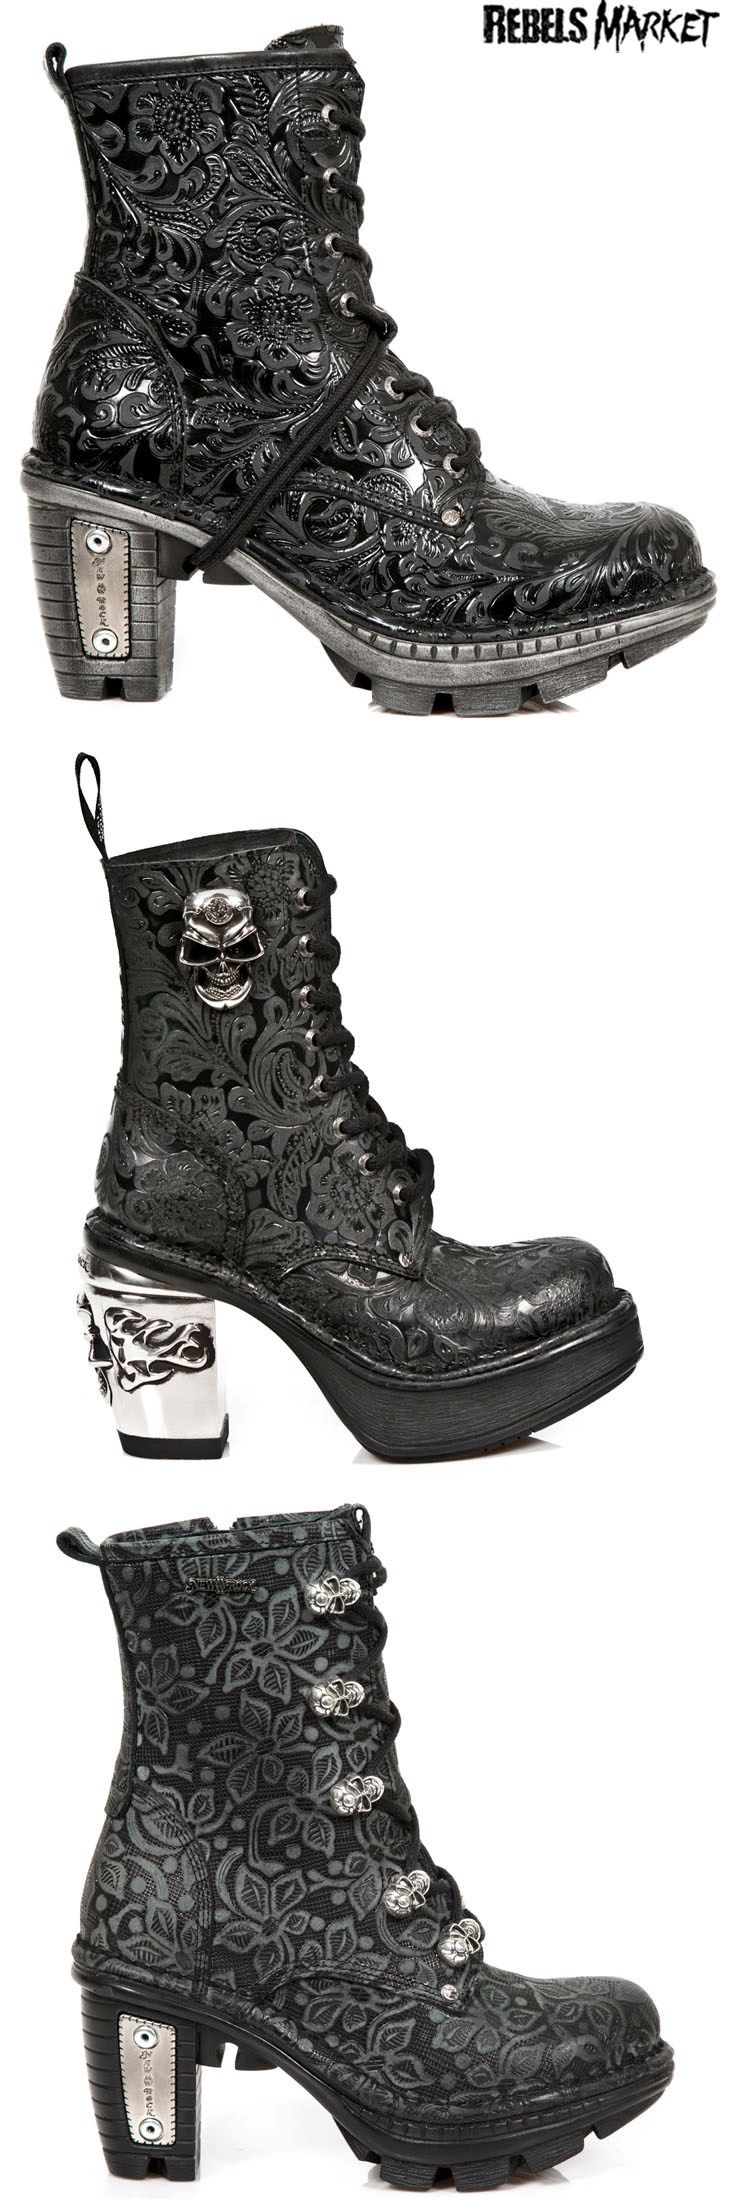 Shop skulls goth boots at RebelsMarket!